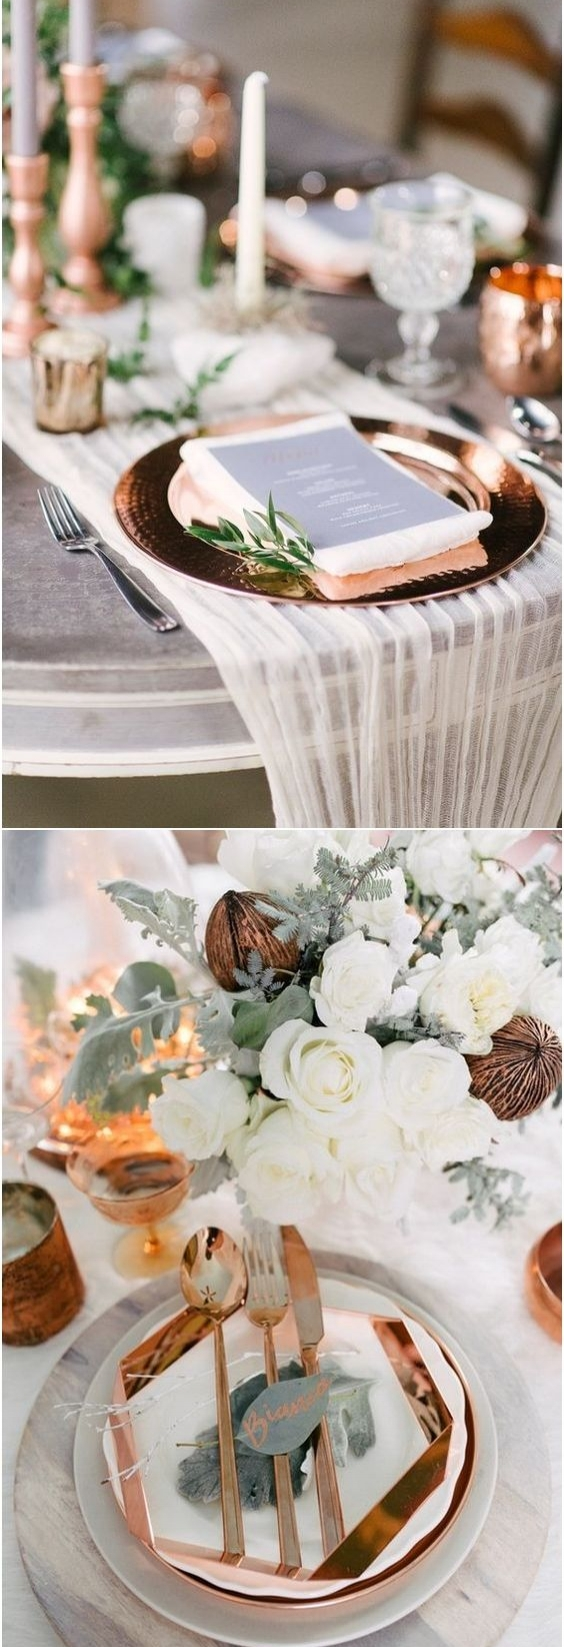 Metallic Accents - - Using various metallic vases, chargers, or votive candles can be a great metallic addition to your tablescape. Mercury glass has been around and I don't think it's going anywhere soon; however Copper is sure making a big statement. *Photo extracted from Pinterest for reference.